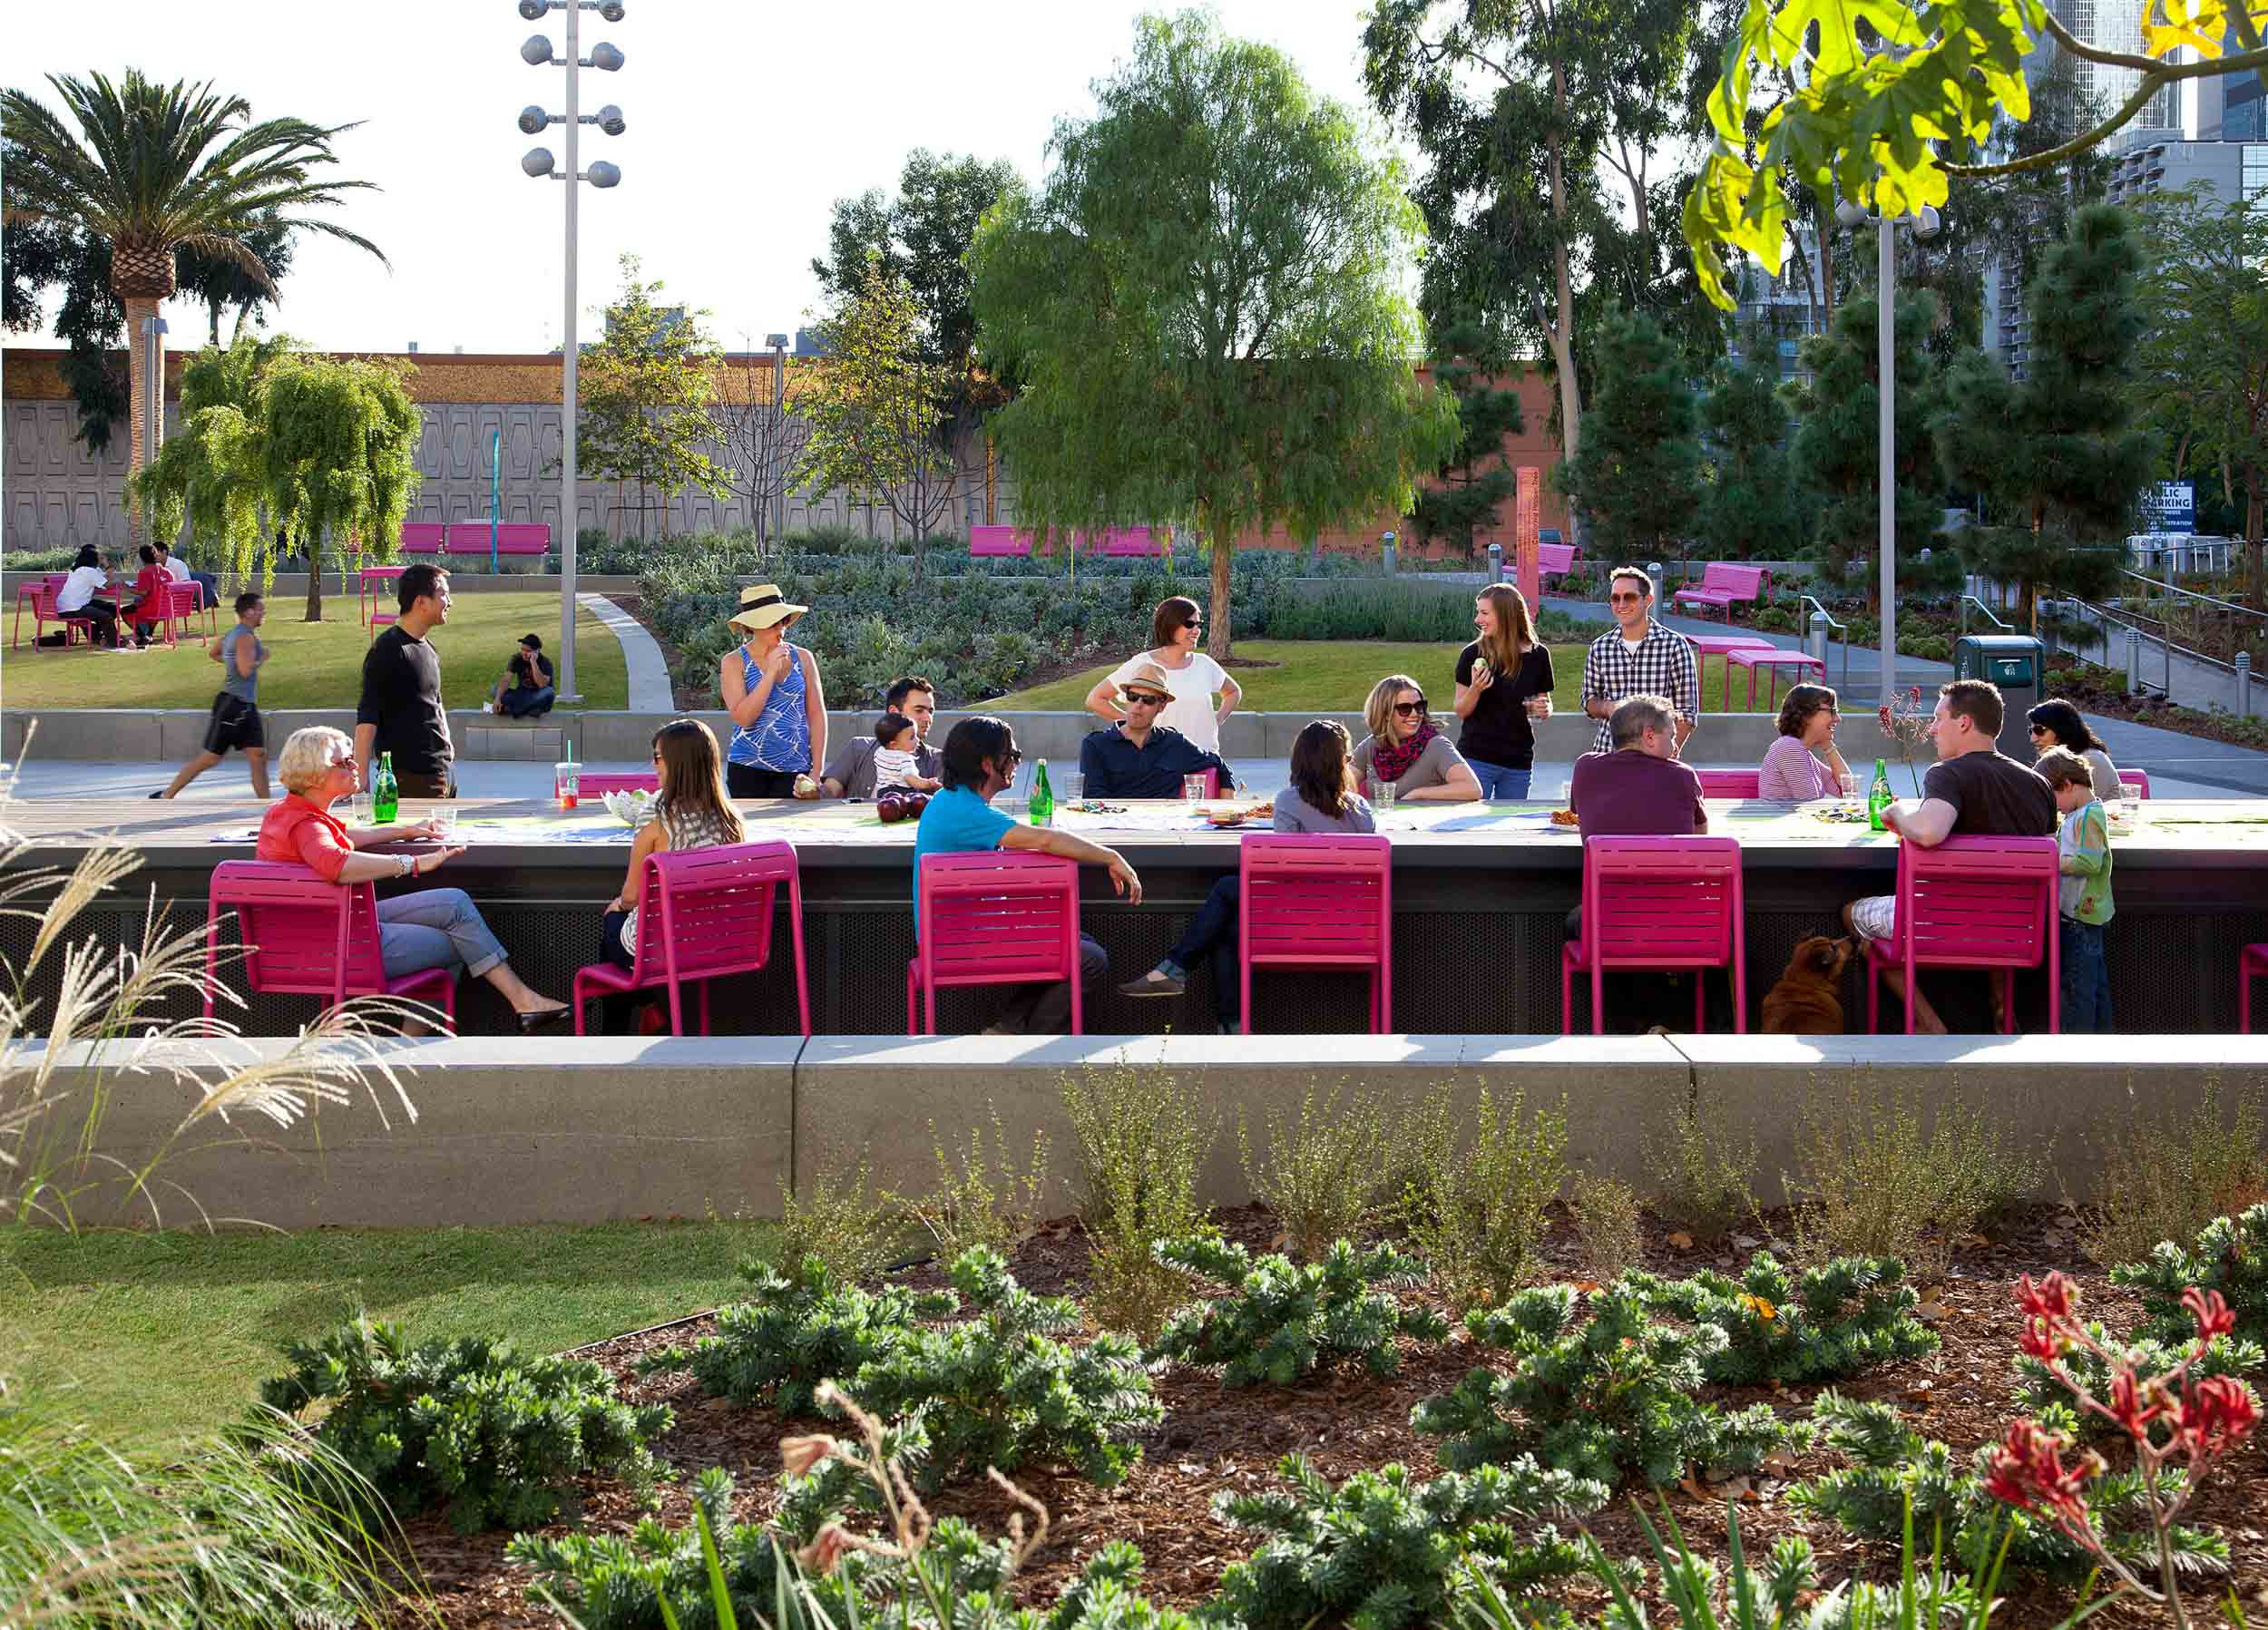 people seated at pink chairs along a long outdoor dining table surrounded by trees and plants